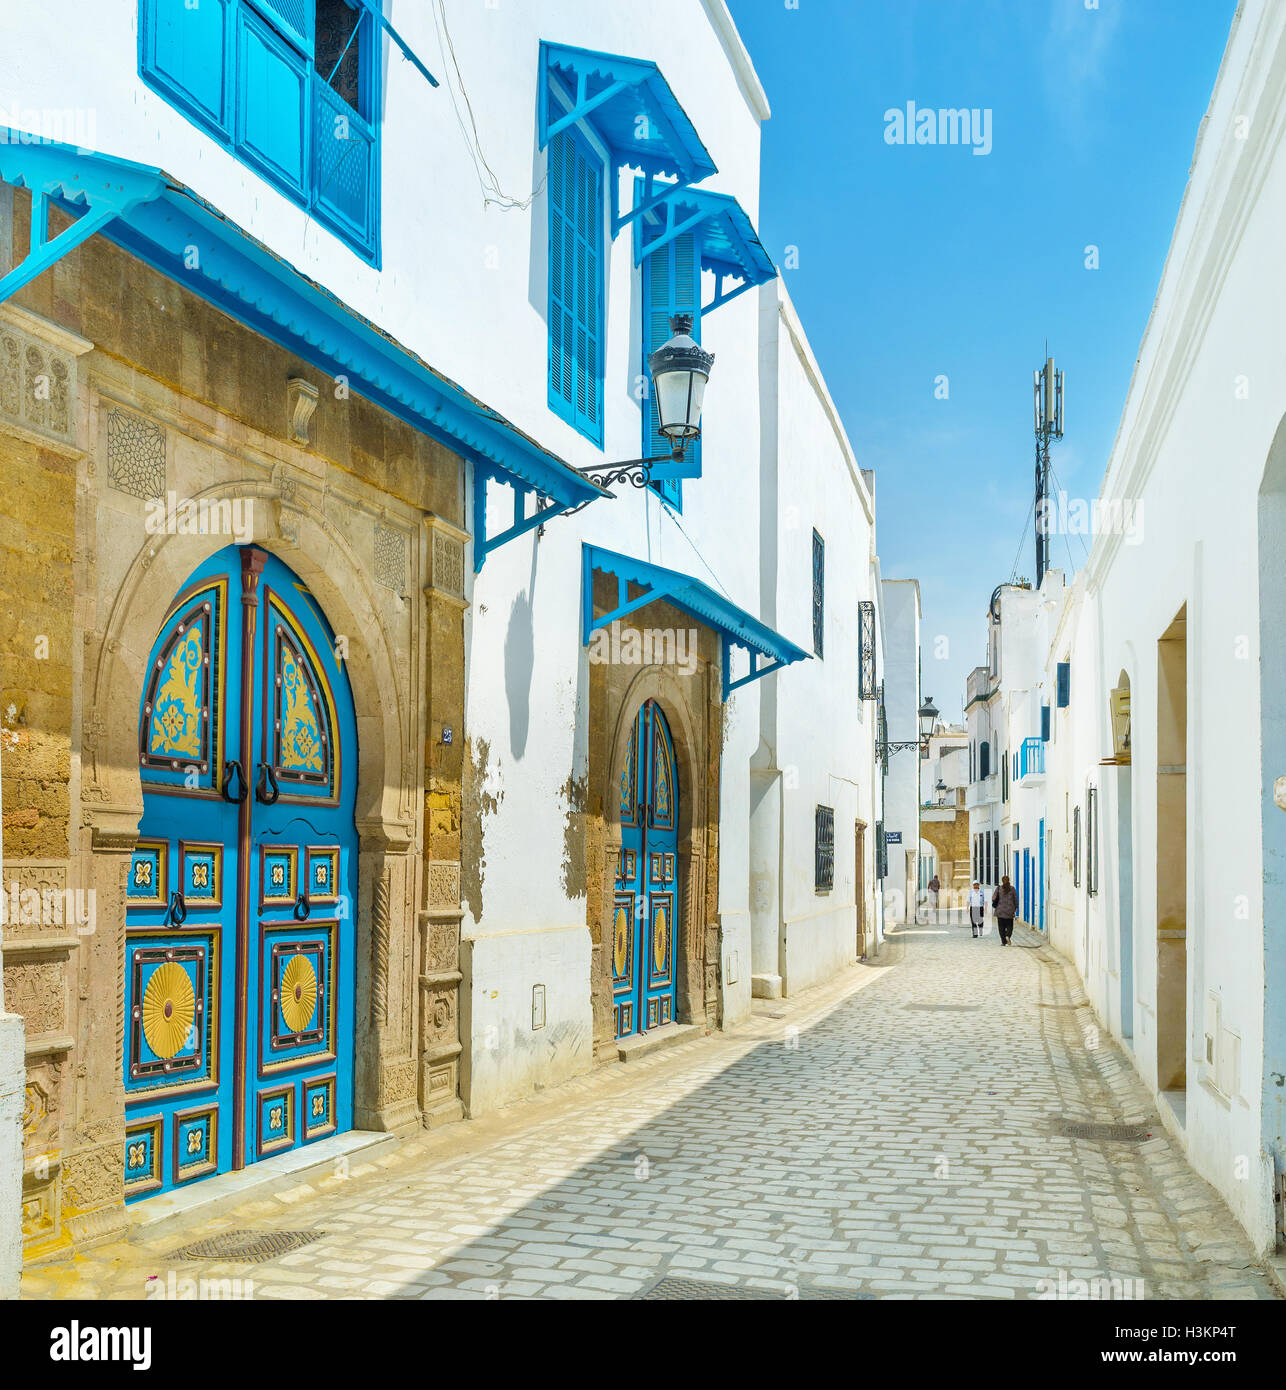 The modest arabic houses often boast unique colorful doors in Tunis. - Stock Image